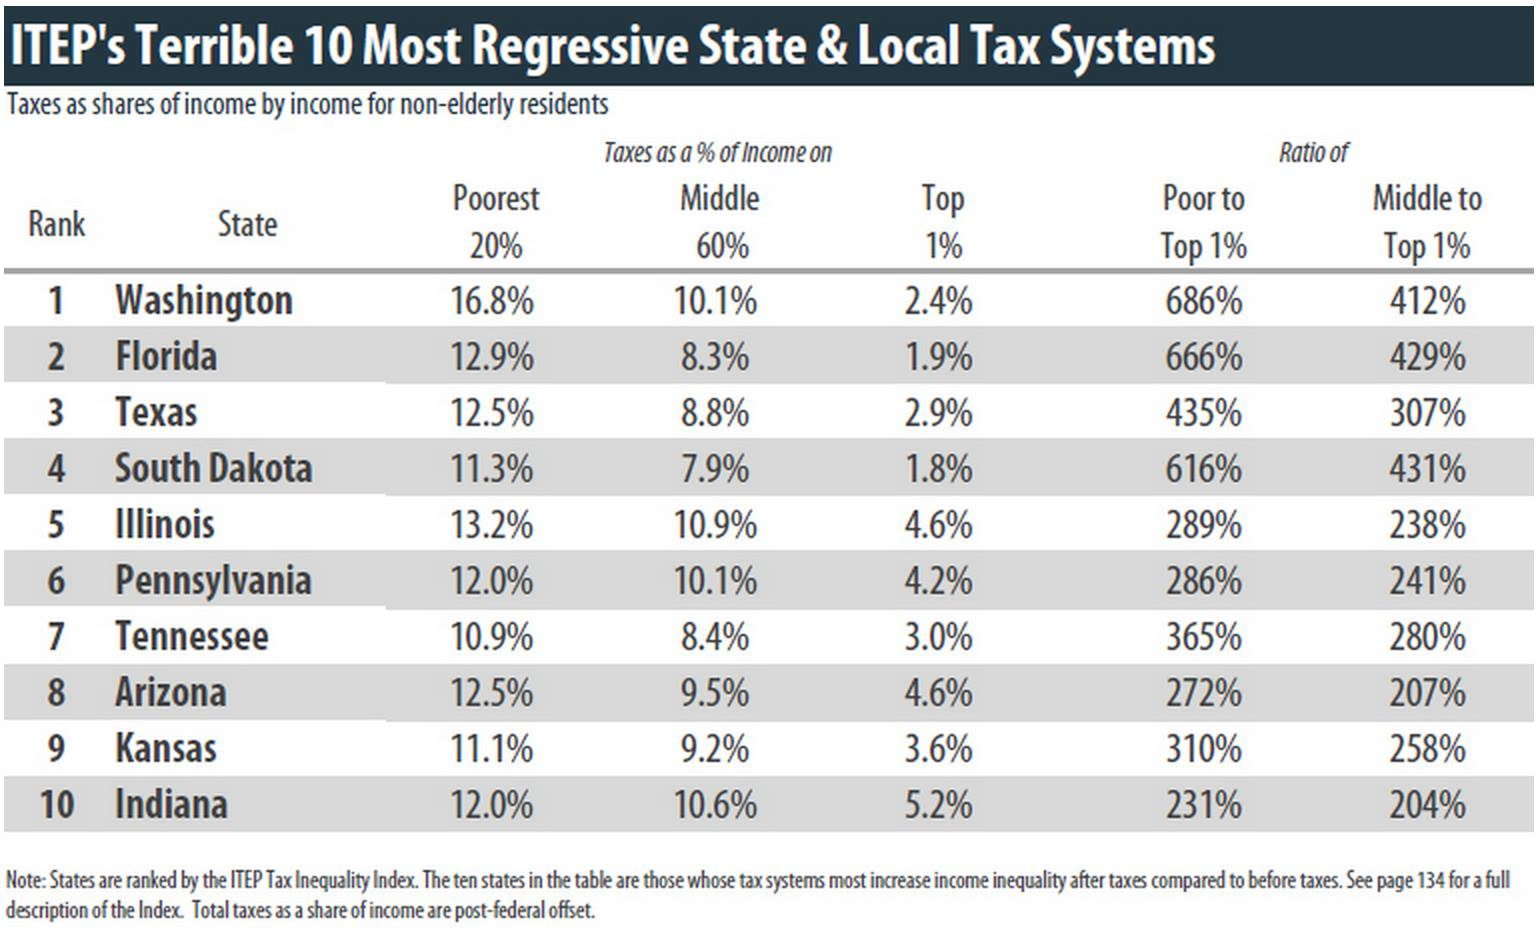 Washington State has the most regressive taxes in the U.S.